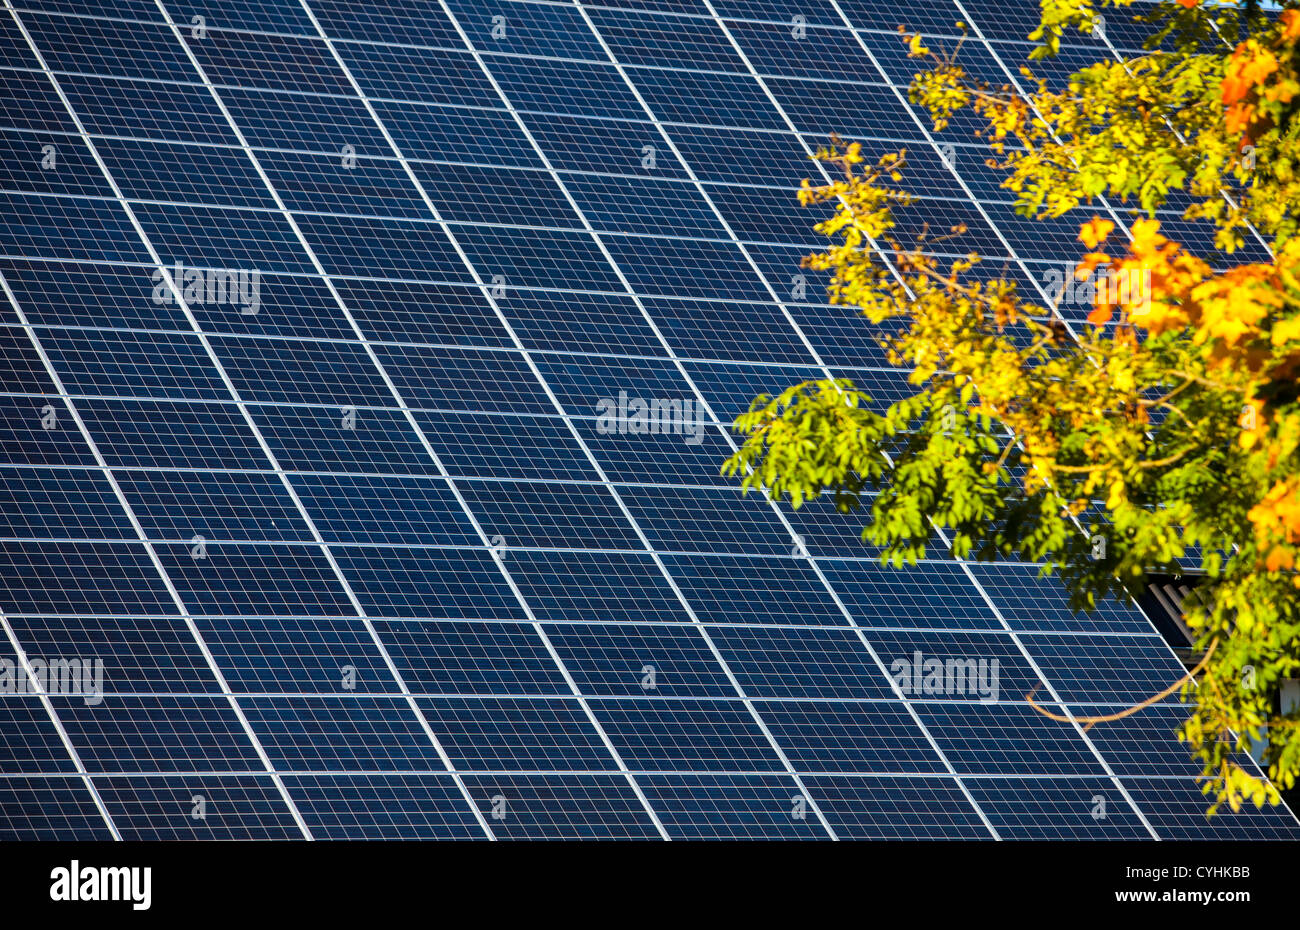 Solar panels on a roof of a farm house. - Stock Image